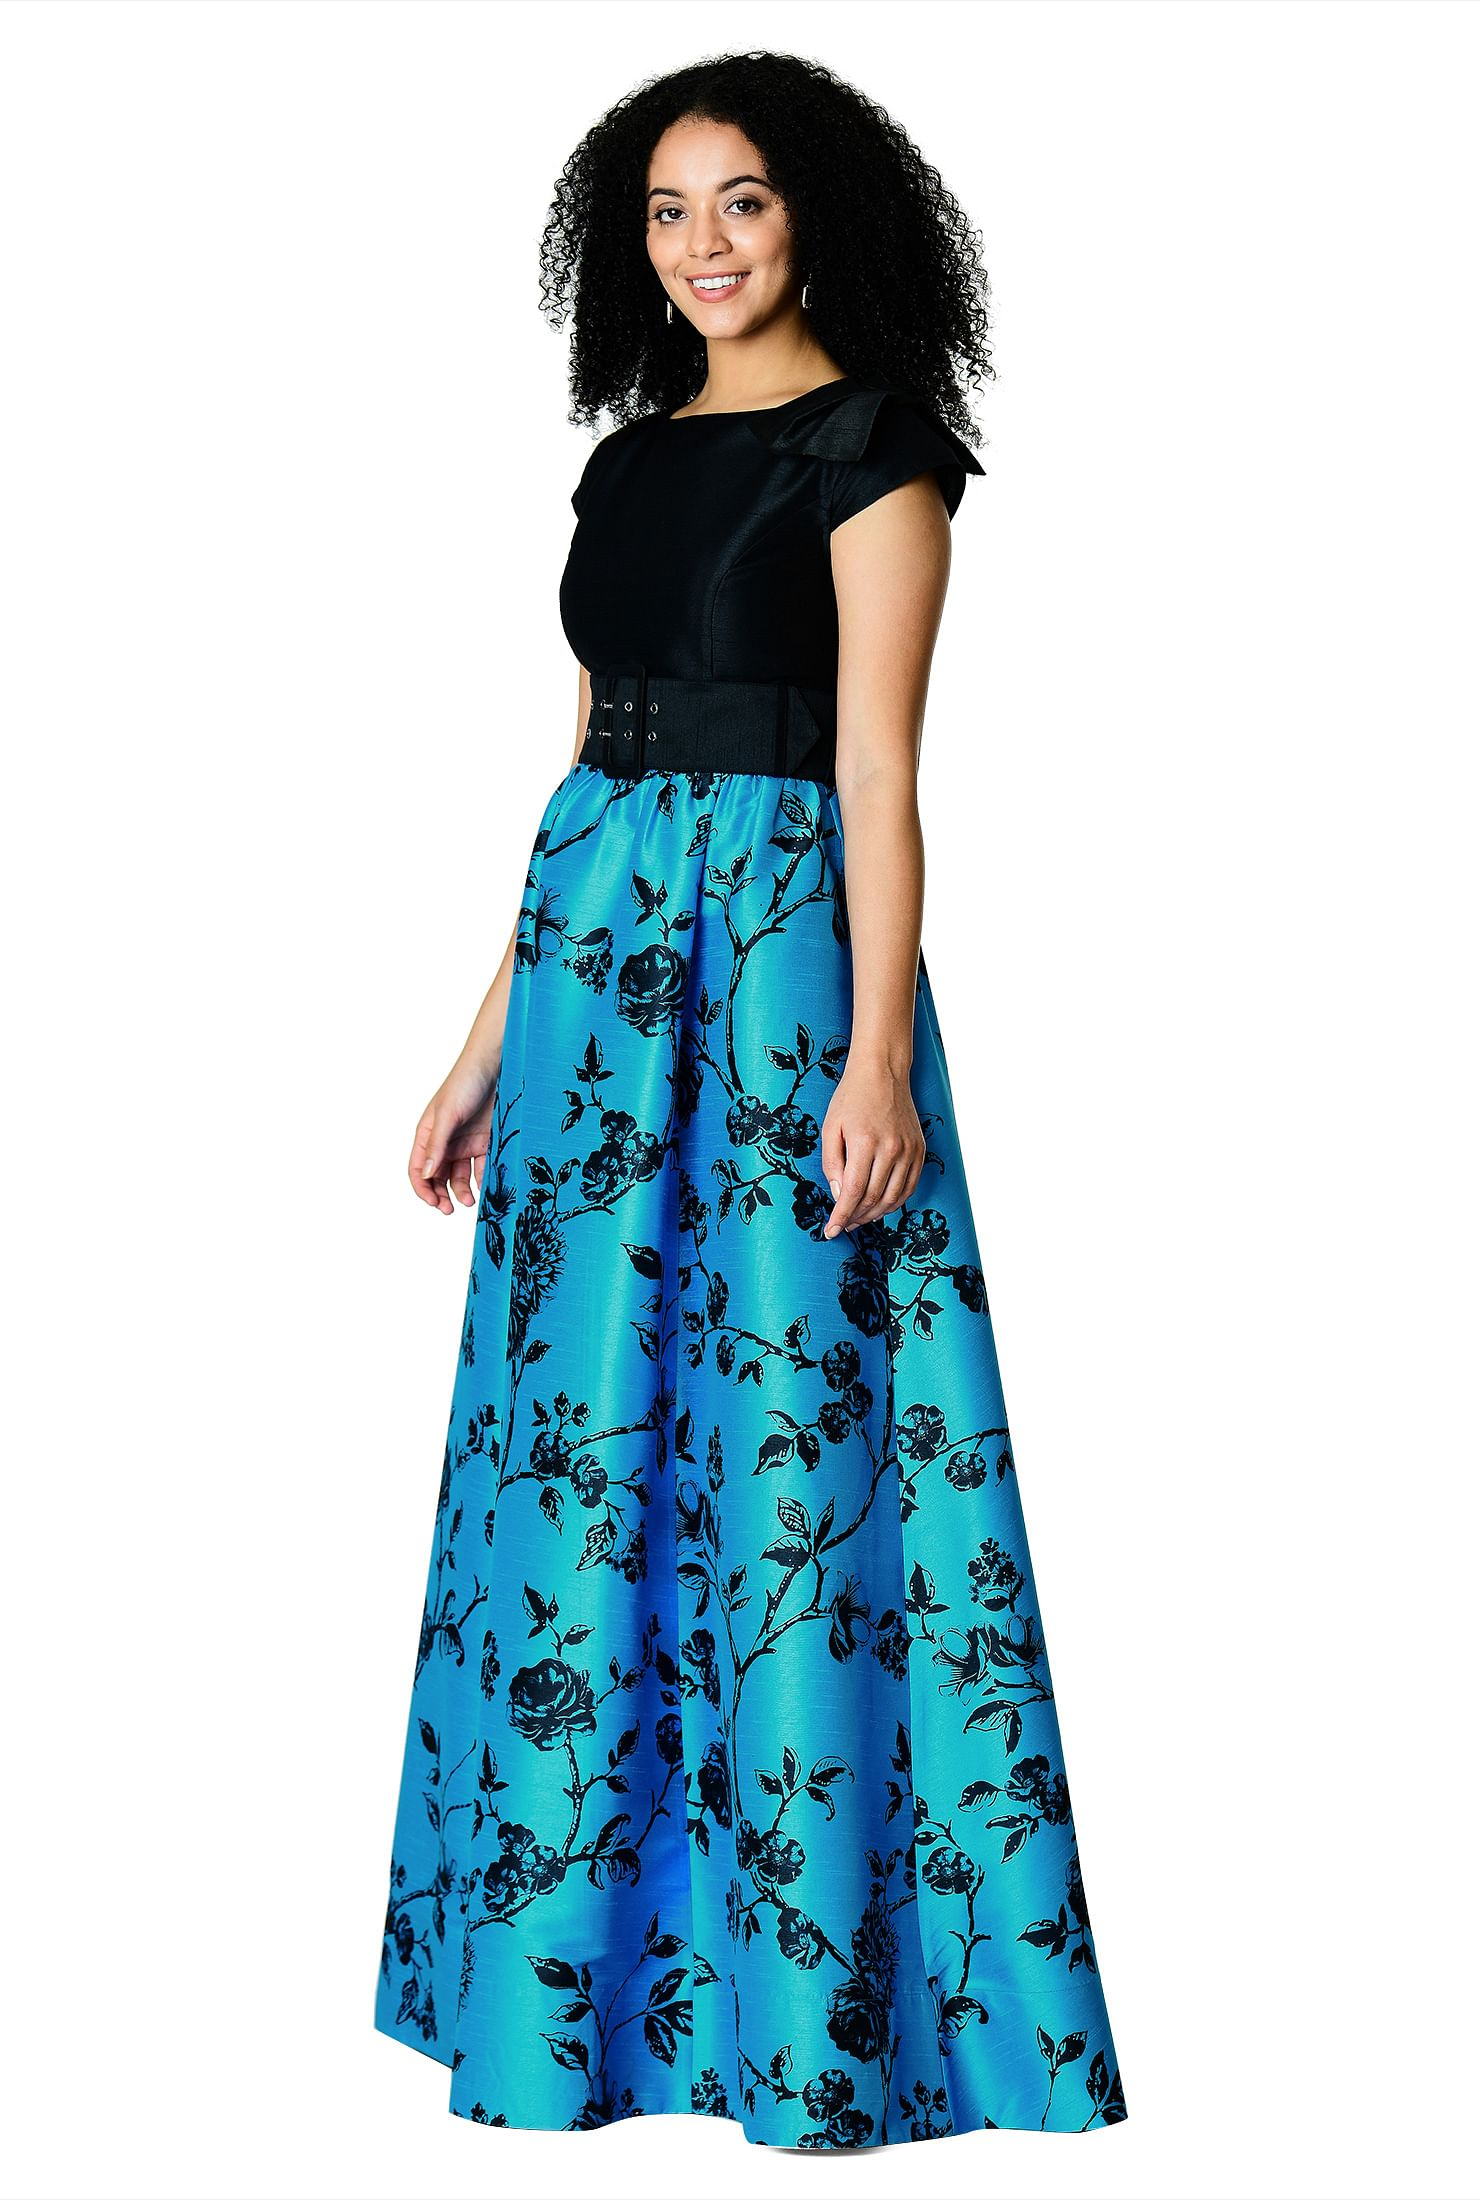 6926a4a19d7 Women s Fashion Clothing 0-36W and Custom